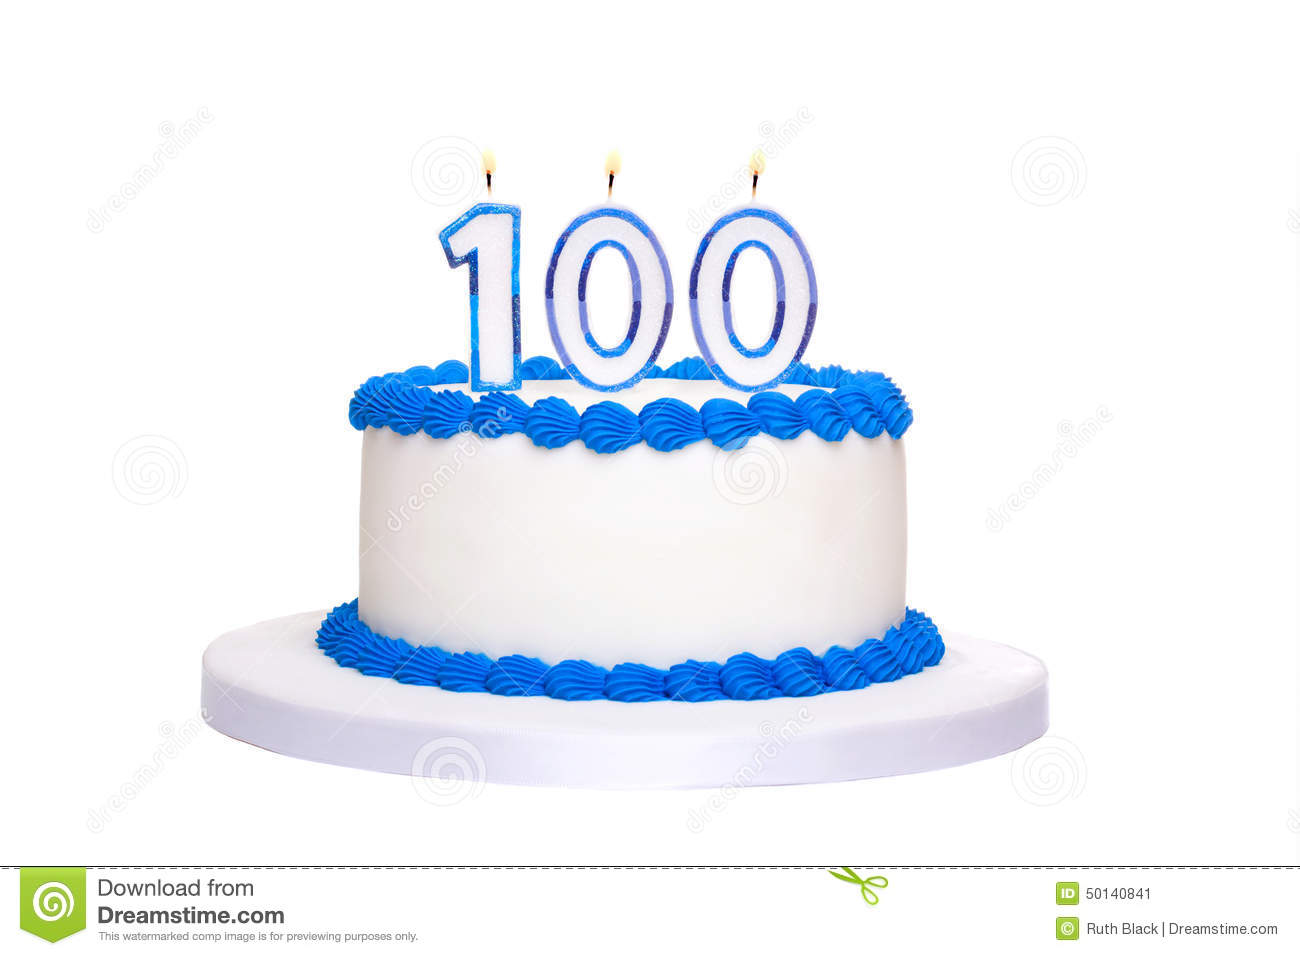 Anniversary Cake Images With Candles : 100th Birthday Cake Stock Photo - Image: 50140841